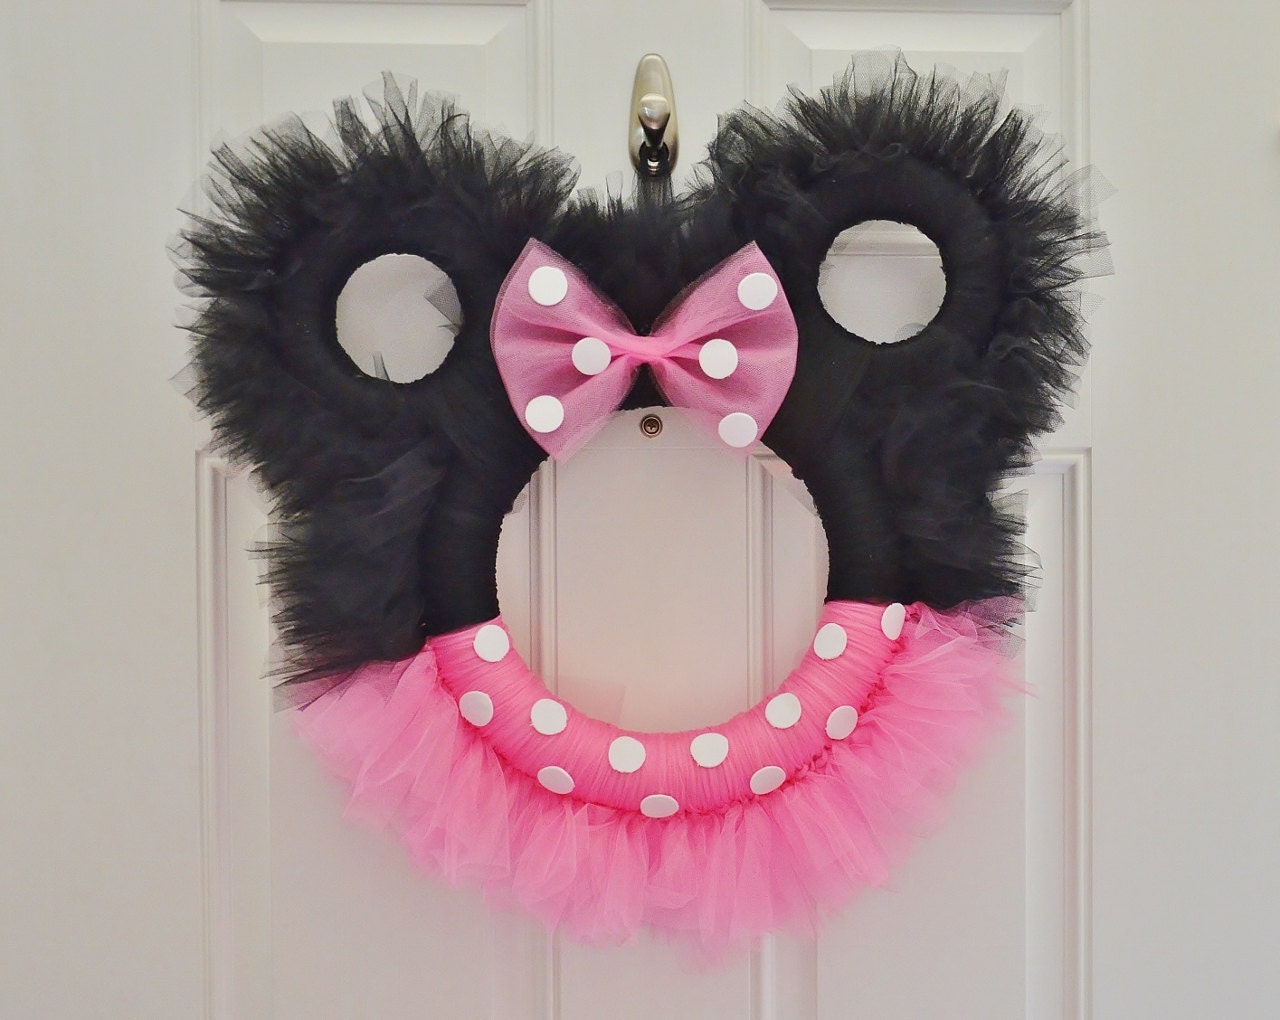 Items similar to Minnie Mouse Tulle Wreath on Etsy